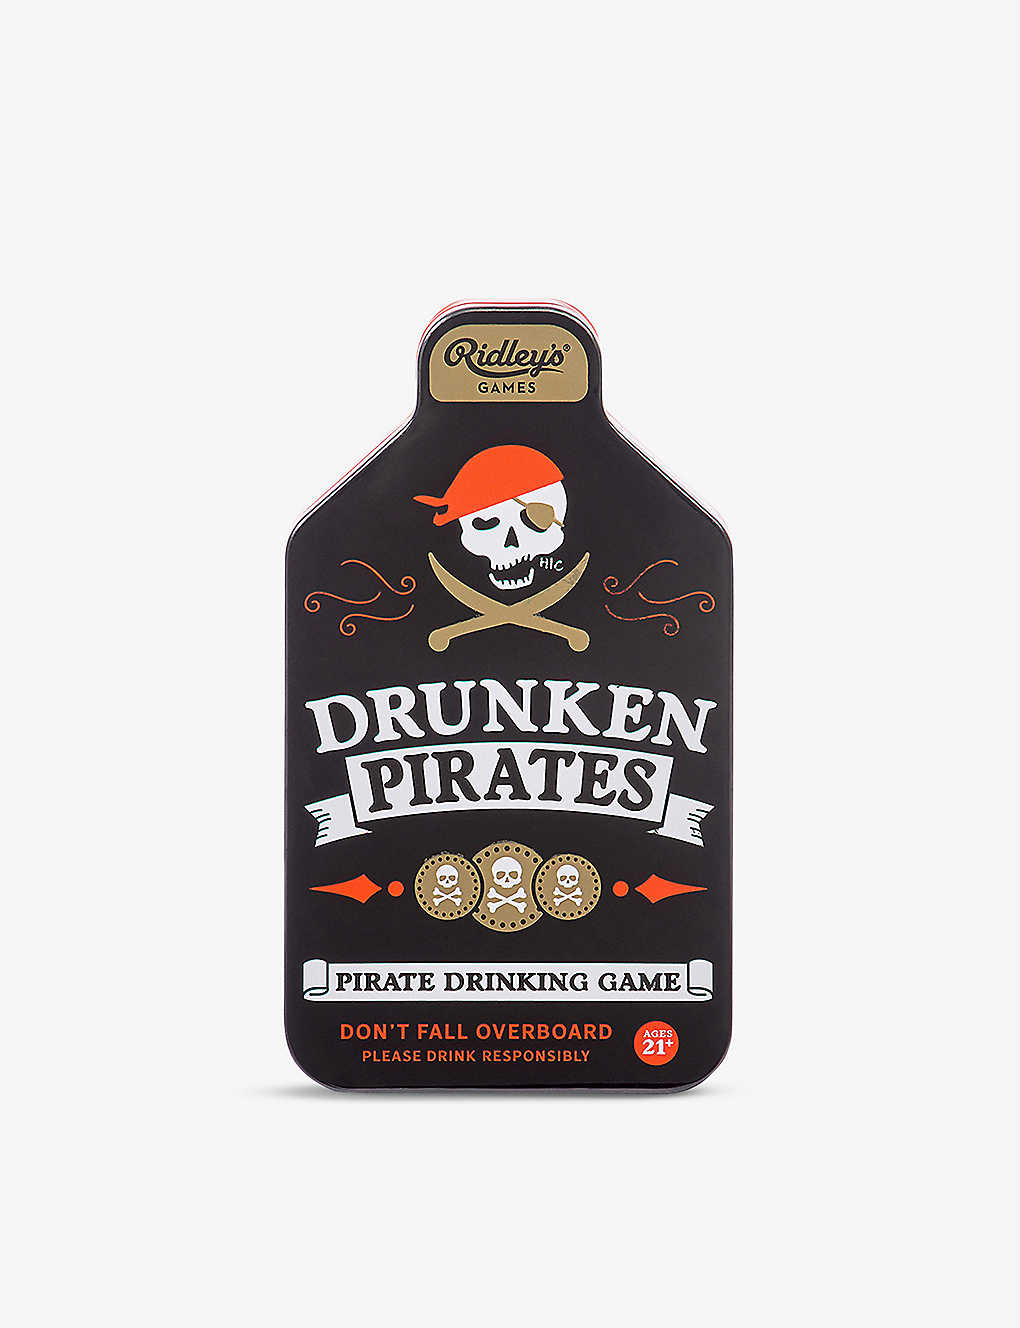 CHRISTMAS: Ridley's Games Drunken Pirate Drinking Game